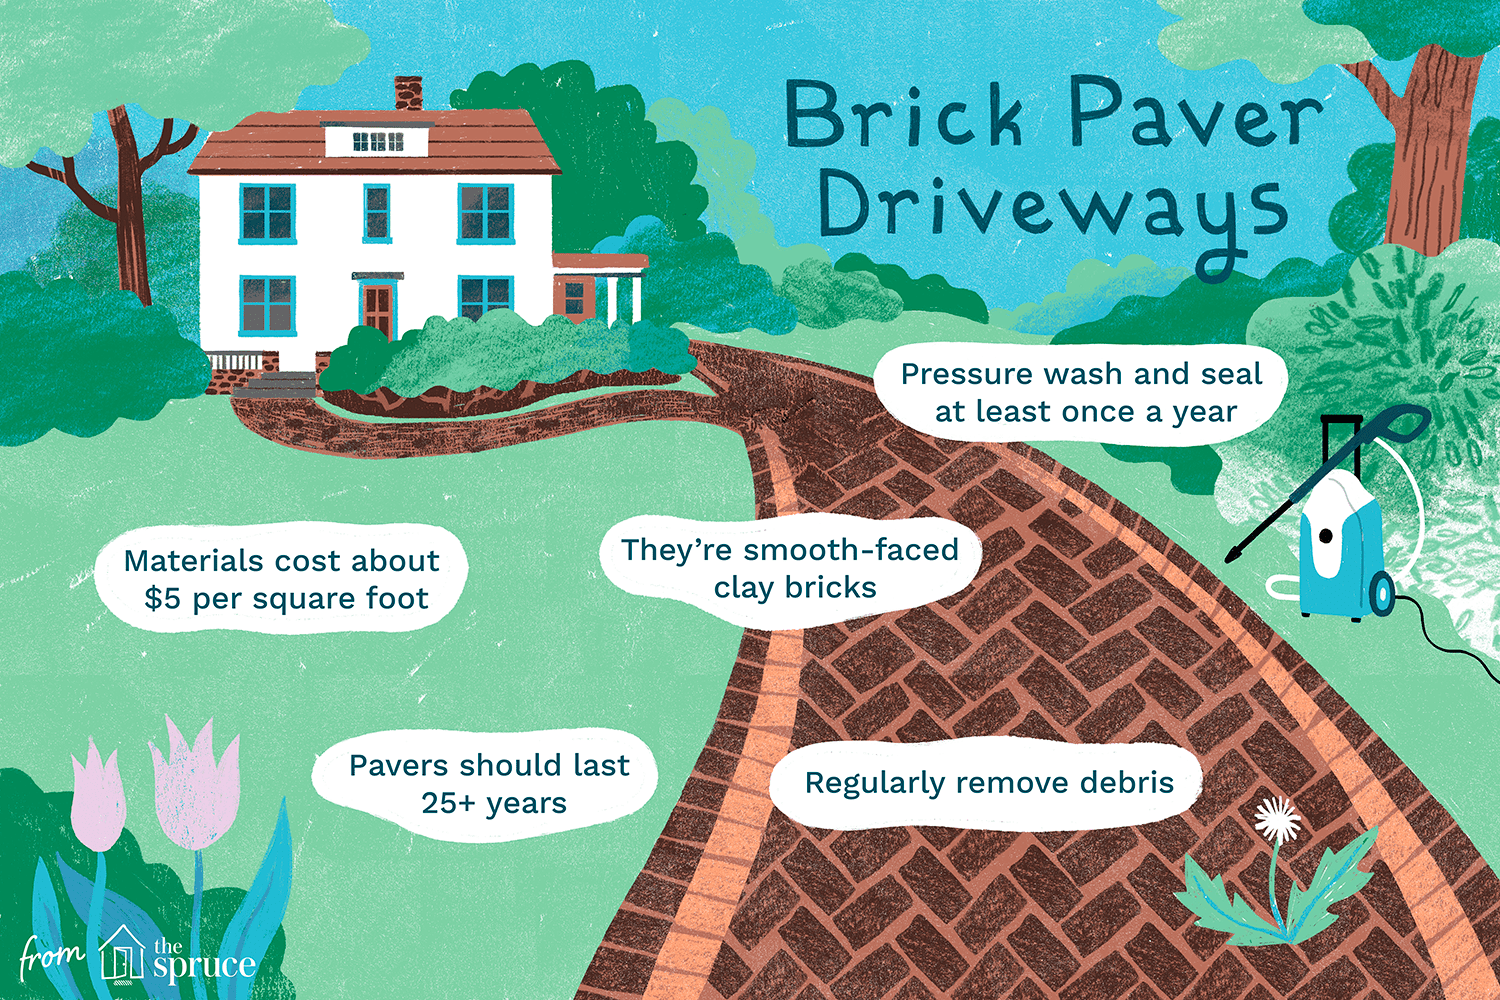 Pros and cons of brick paver driveways illustration